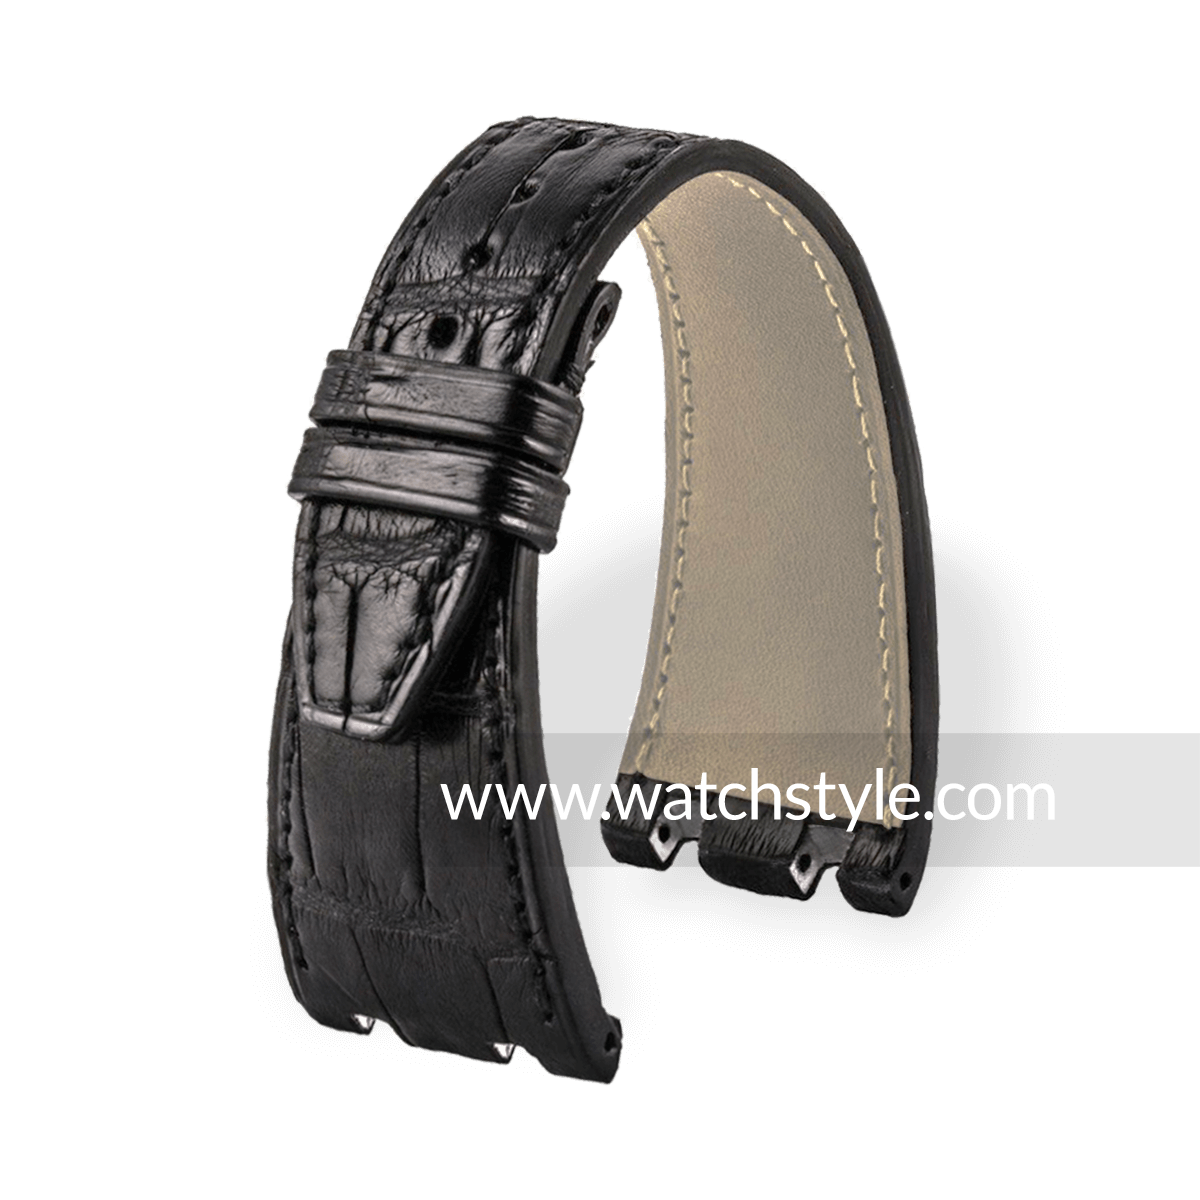 Offshore Bracelet Montre En Alligator Veritable Pour Audemars Piguet